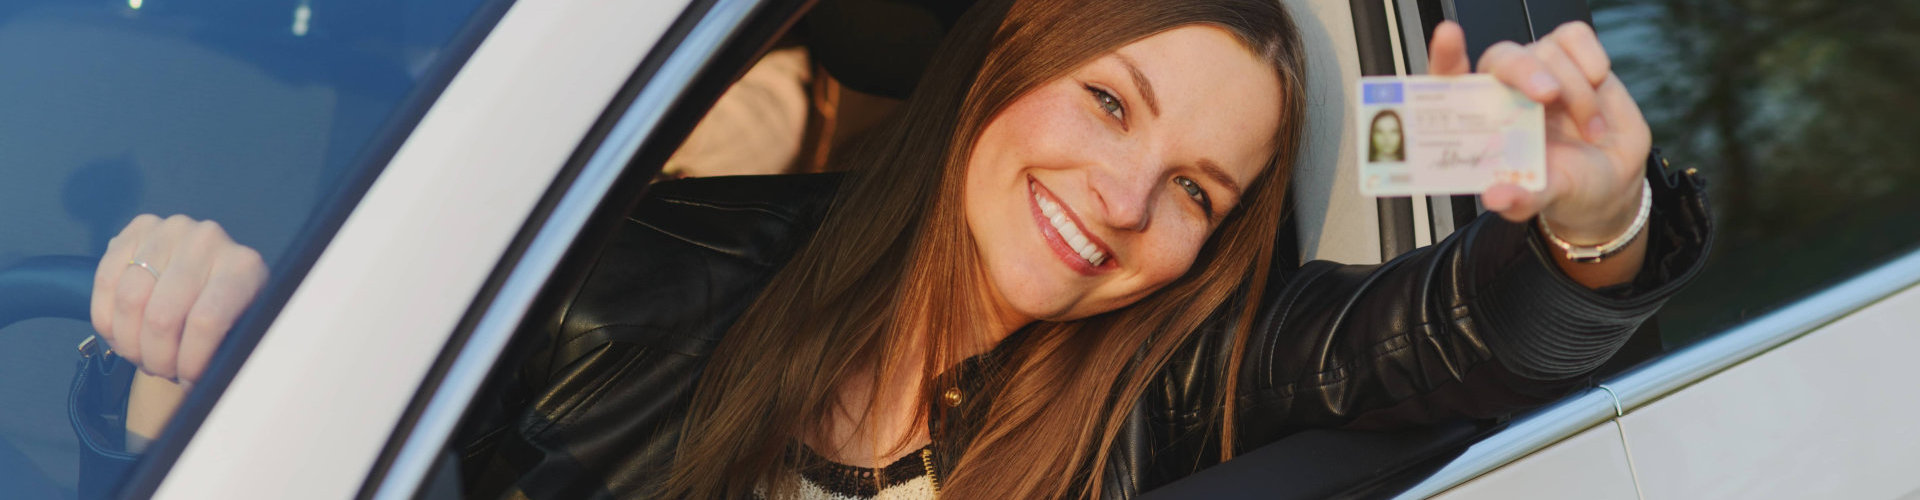 young lady smiling while holding her driver license